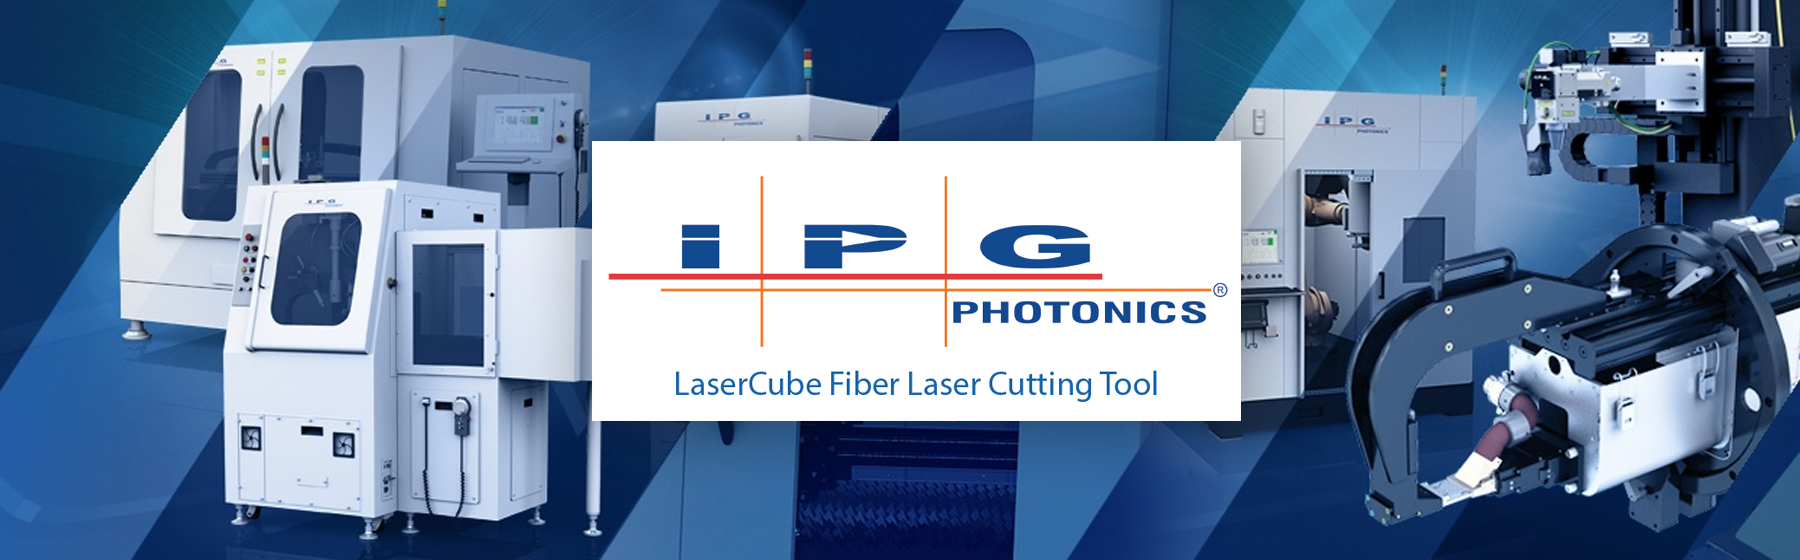 IPG-LaserCube_Mushield